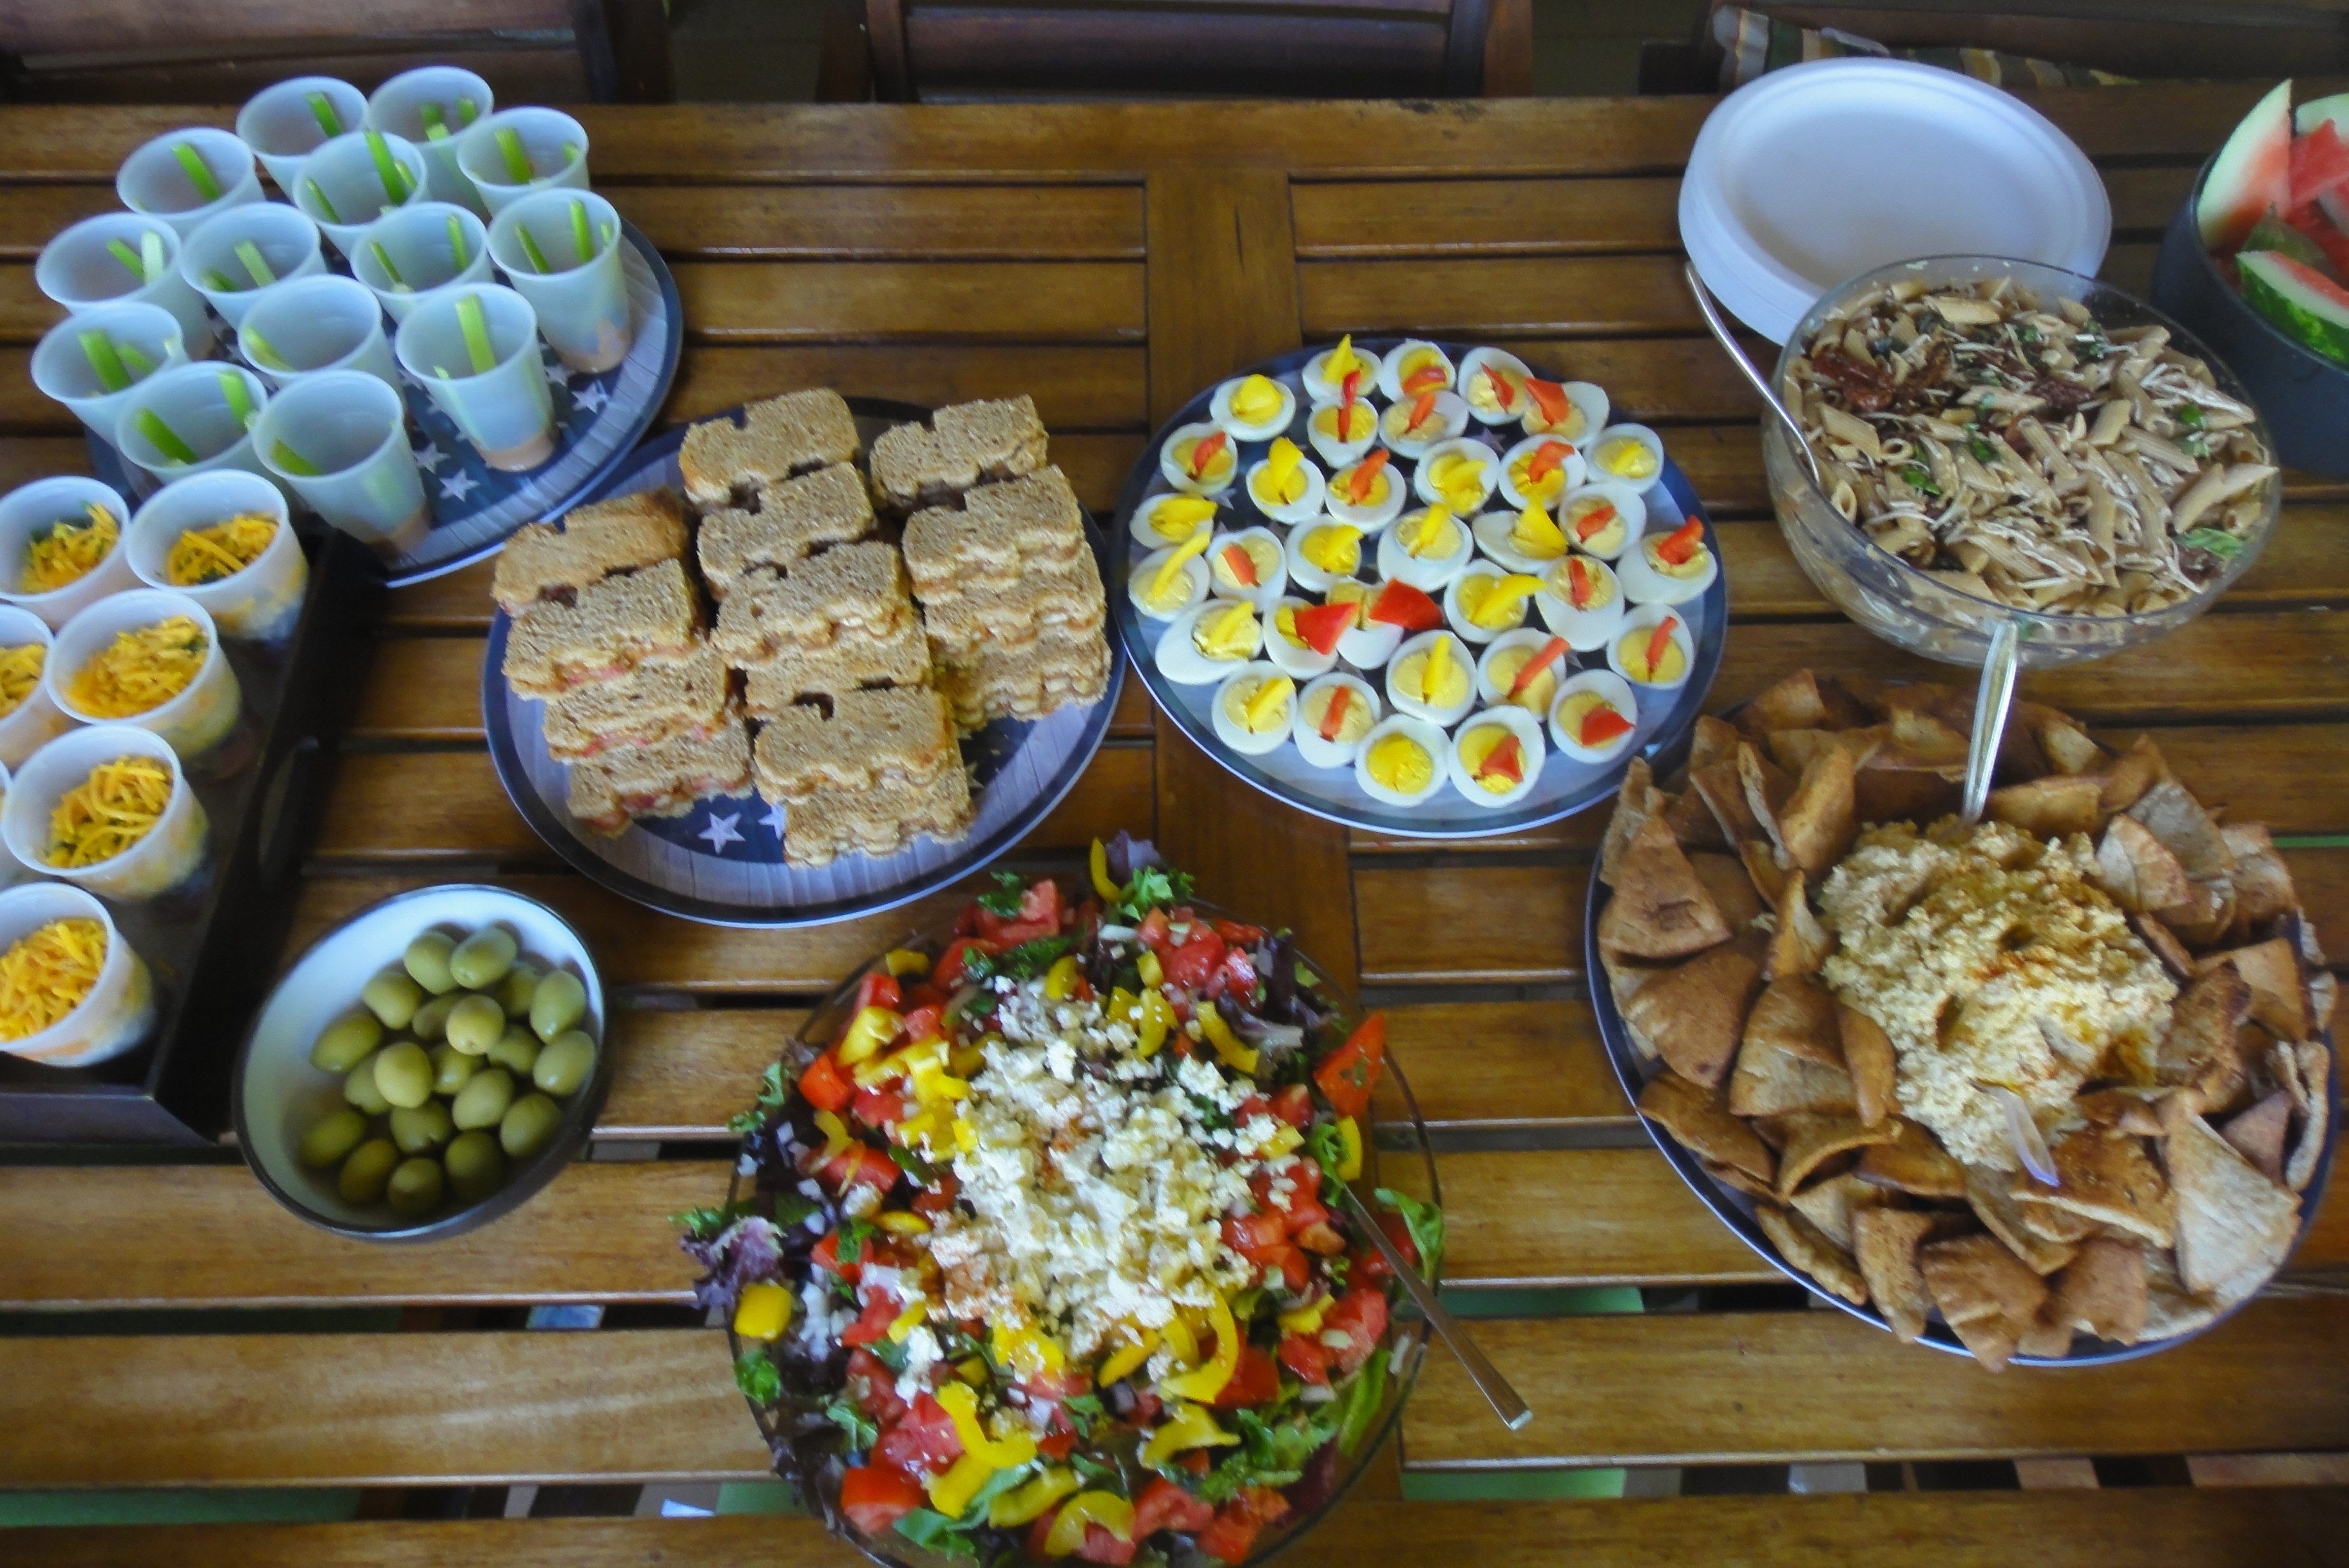 Healthy Snacks For Parties  Construction Themed Party